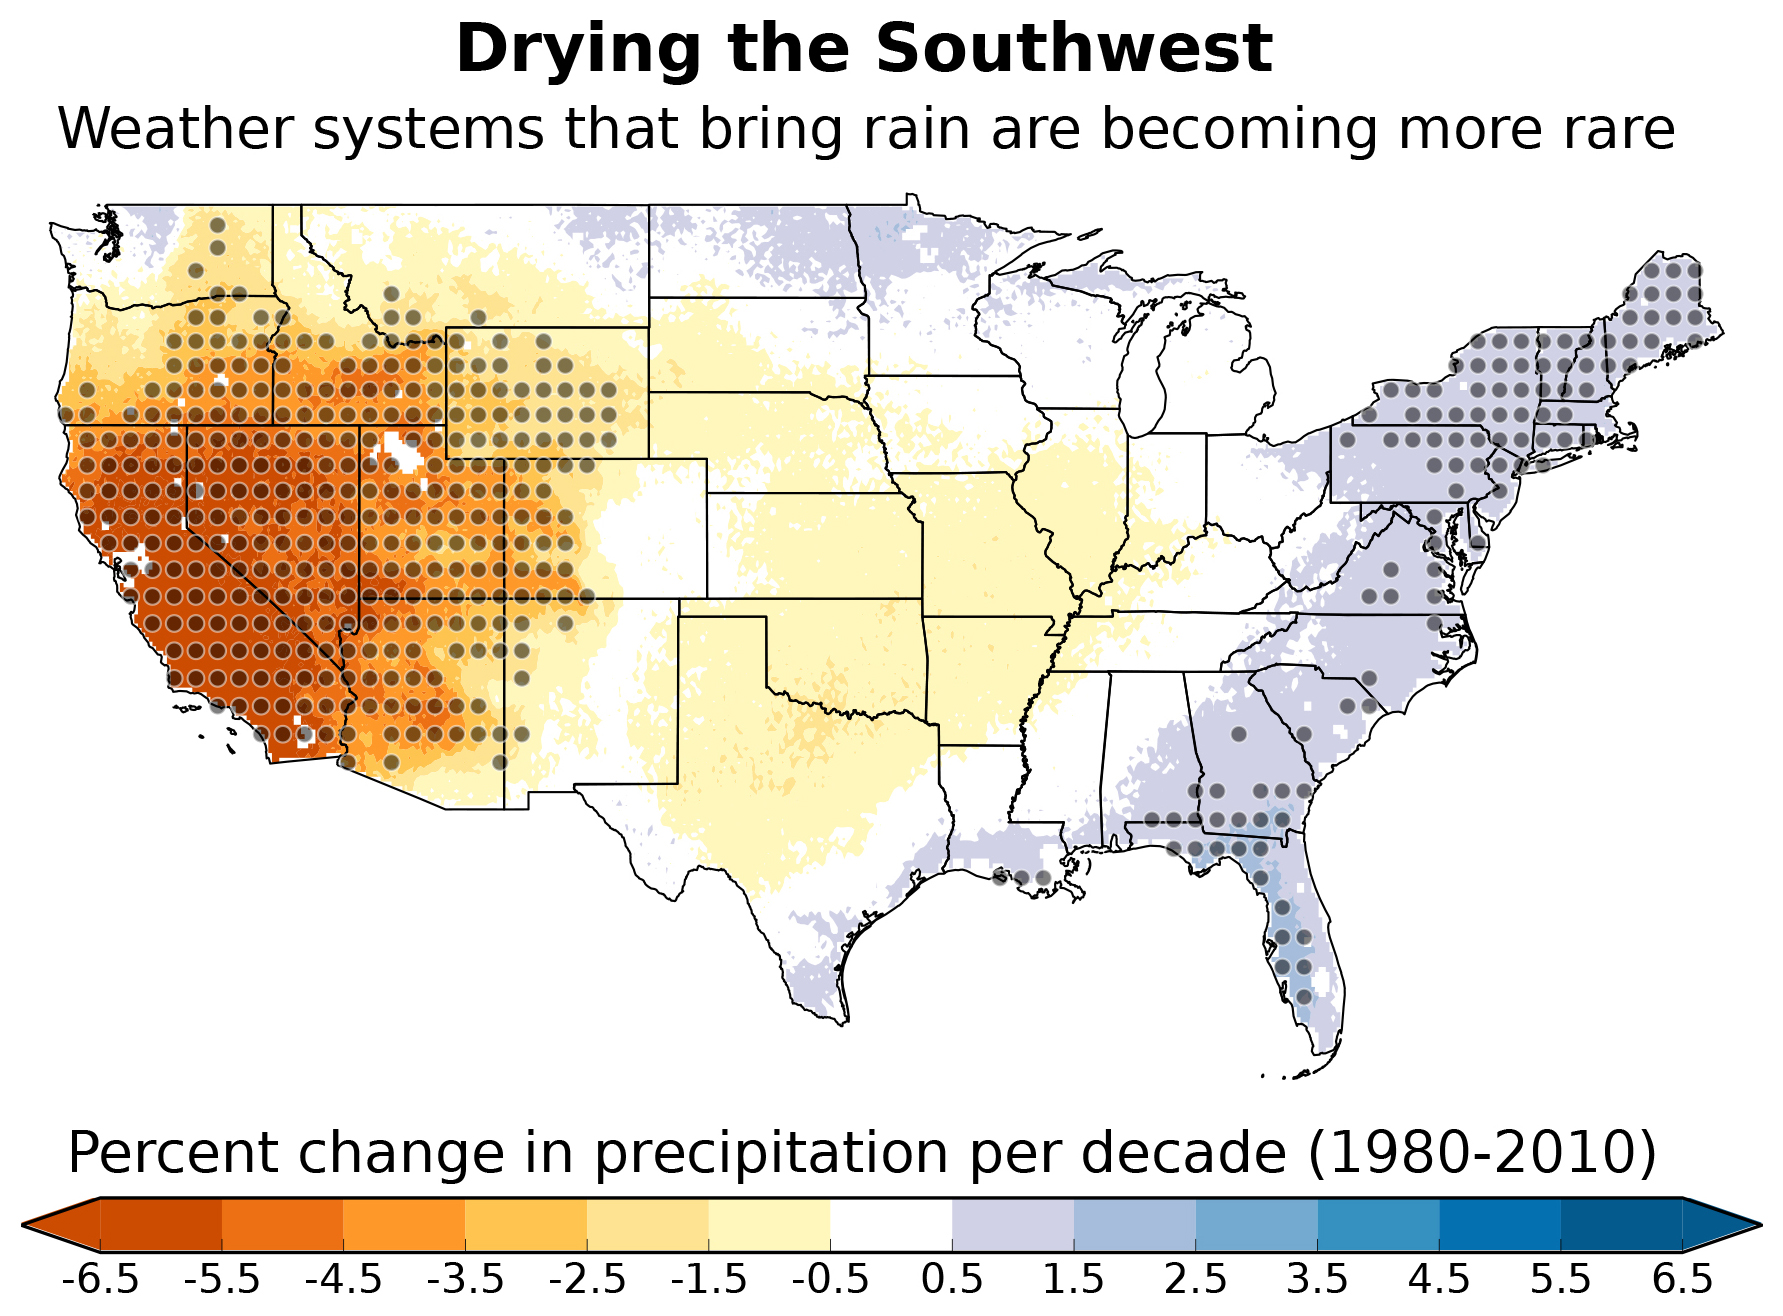 Southwestern Usa Map.Southwest Sliding Into A Drier Normal Weather Patterns That Bring